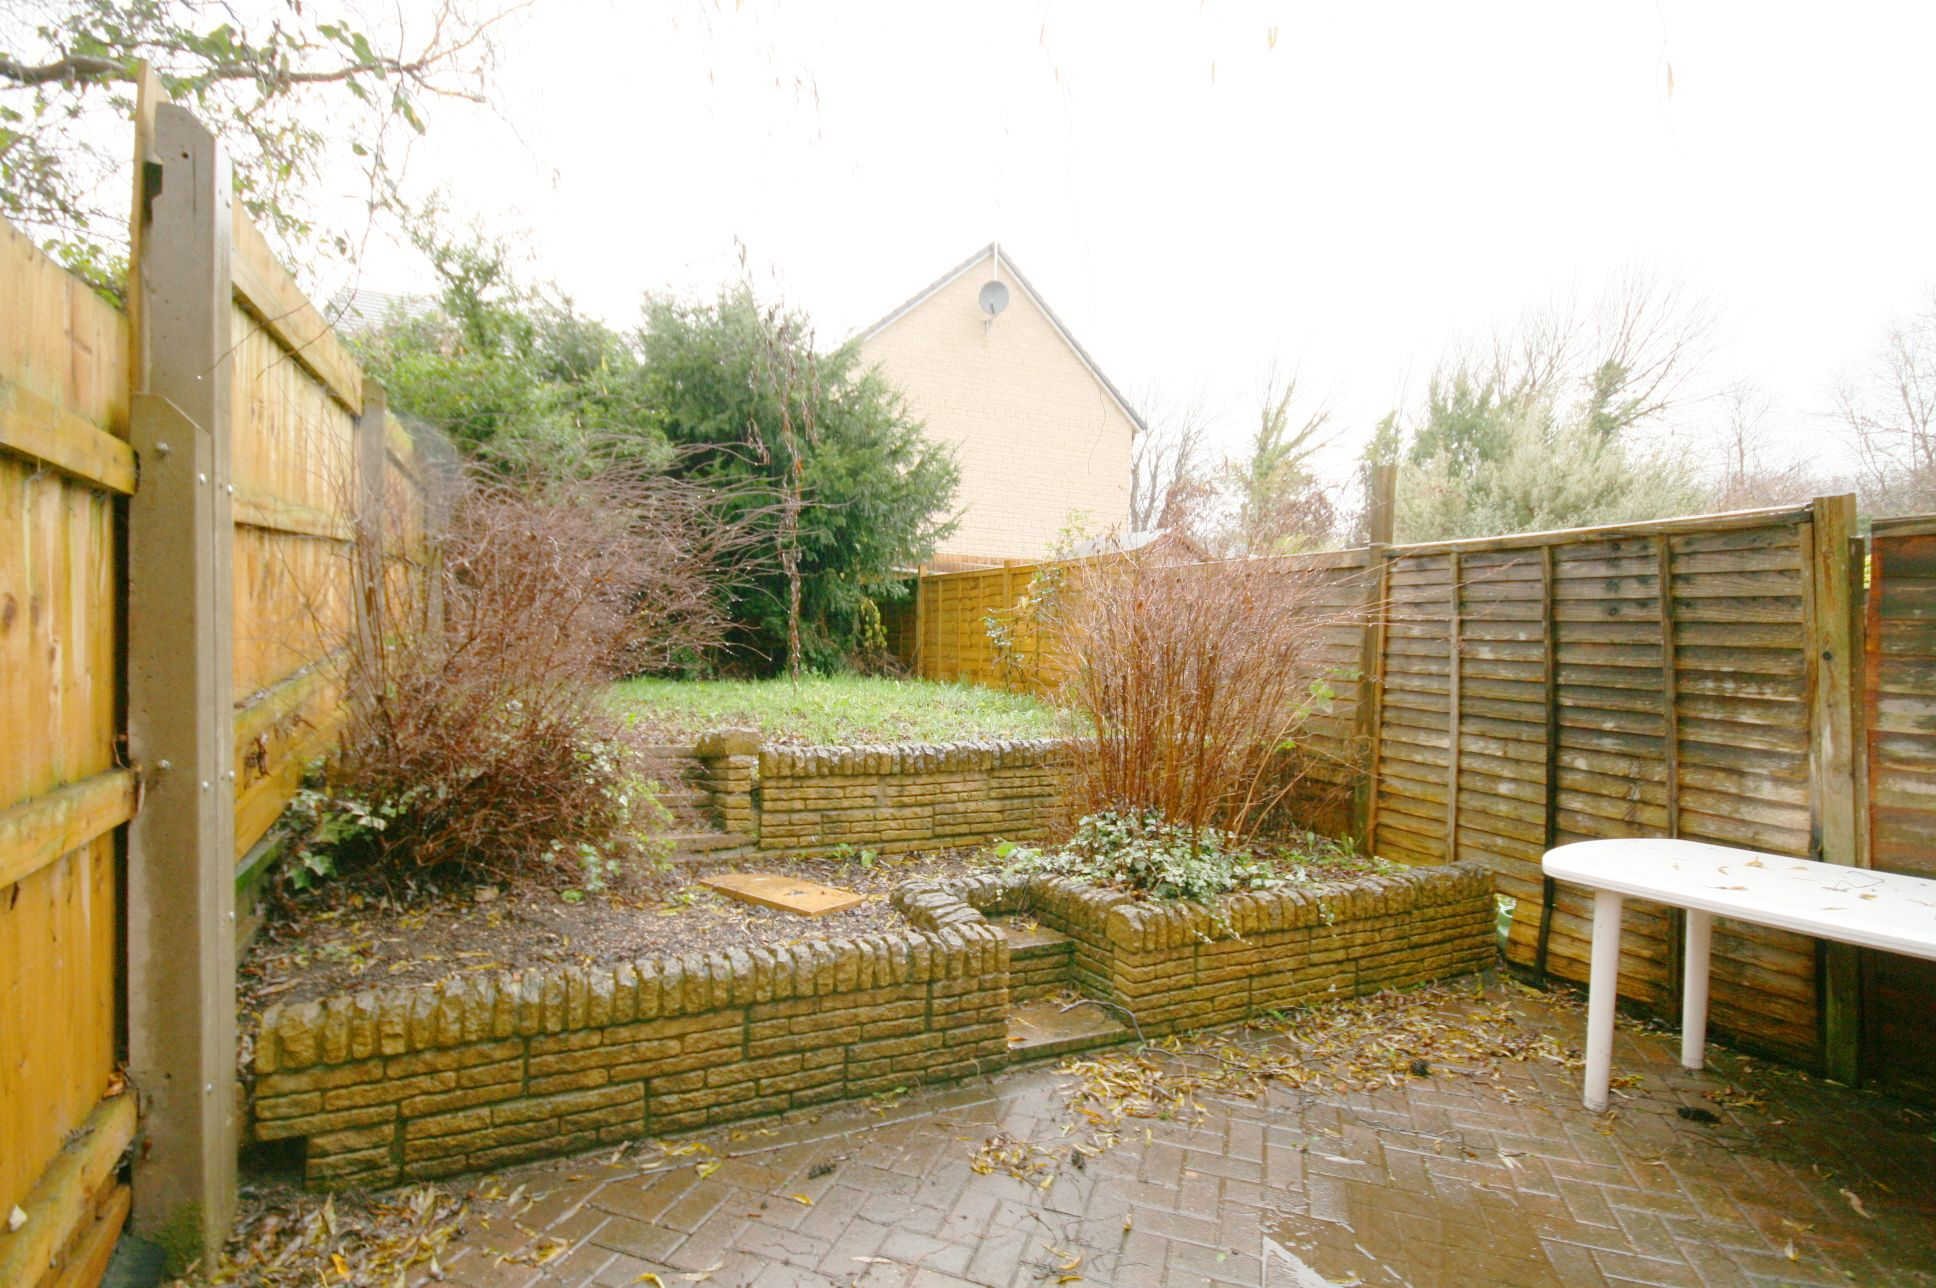 2 Bedroom End Terraced House For Sale - Enclosed rear garden